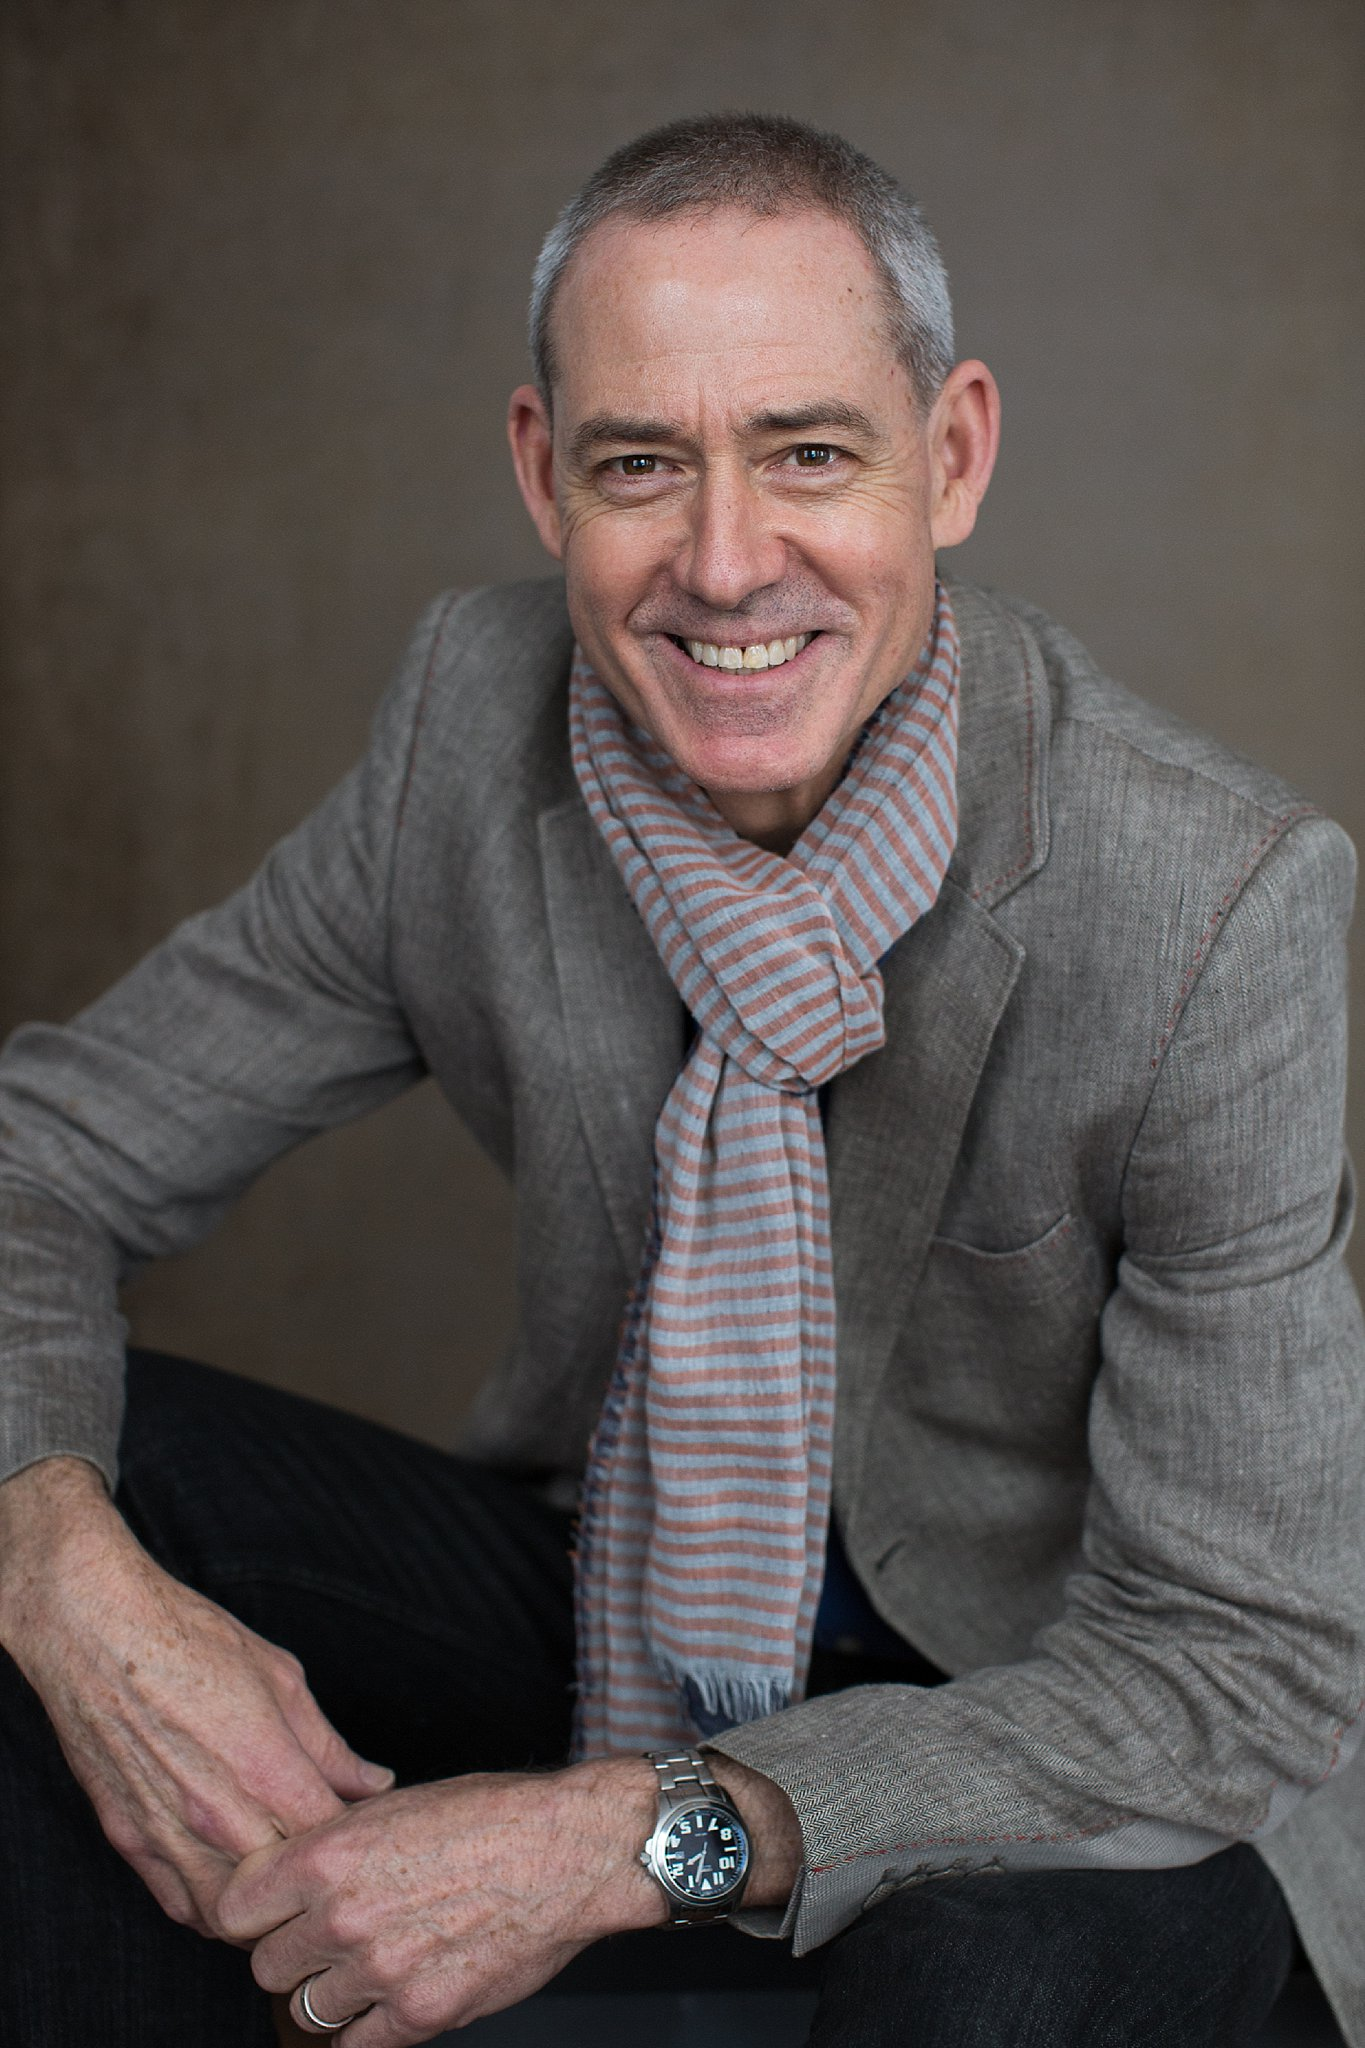 Portrait of David Wearing Tweed and a Scarf_0010.jpg